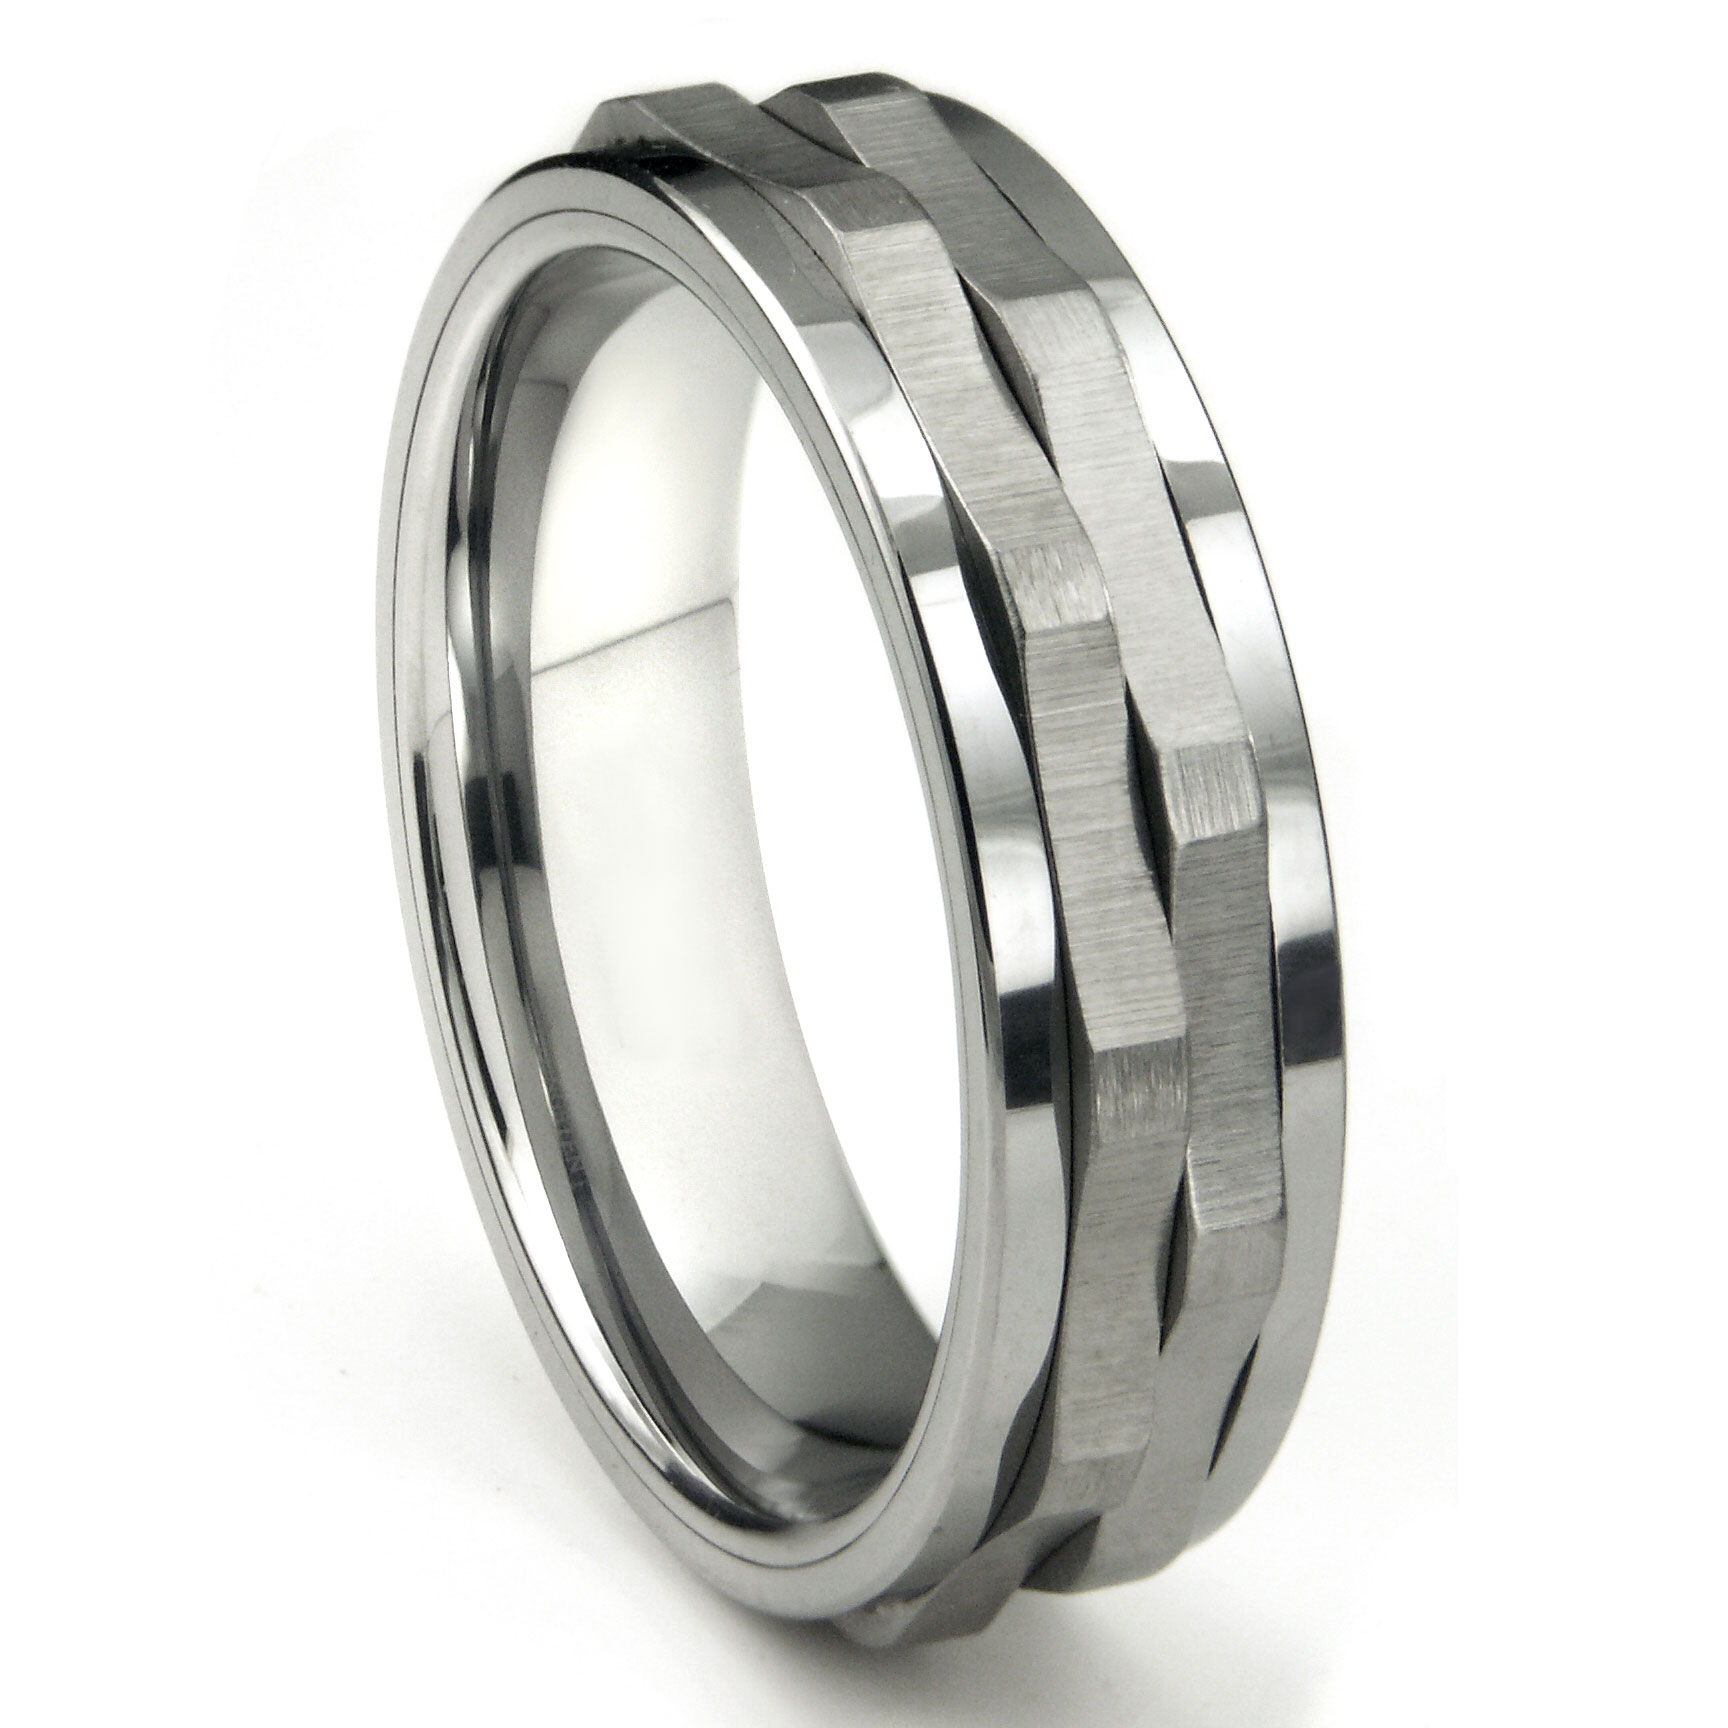 ninja star tungsten carbide spinning wedding band ring With tungsten carbide wedding ring